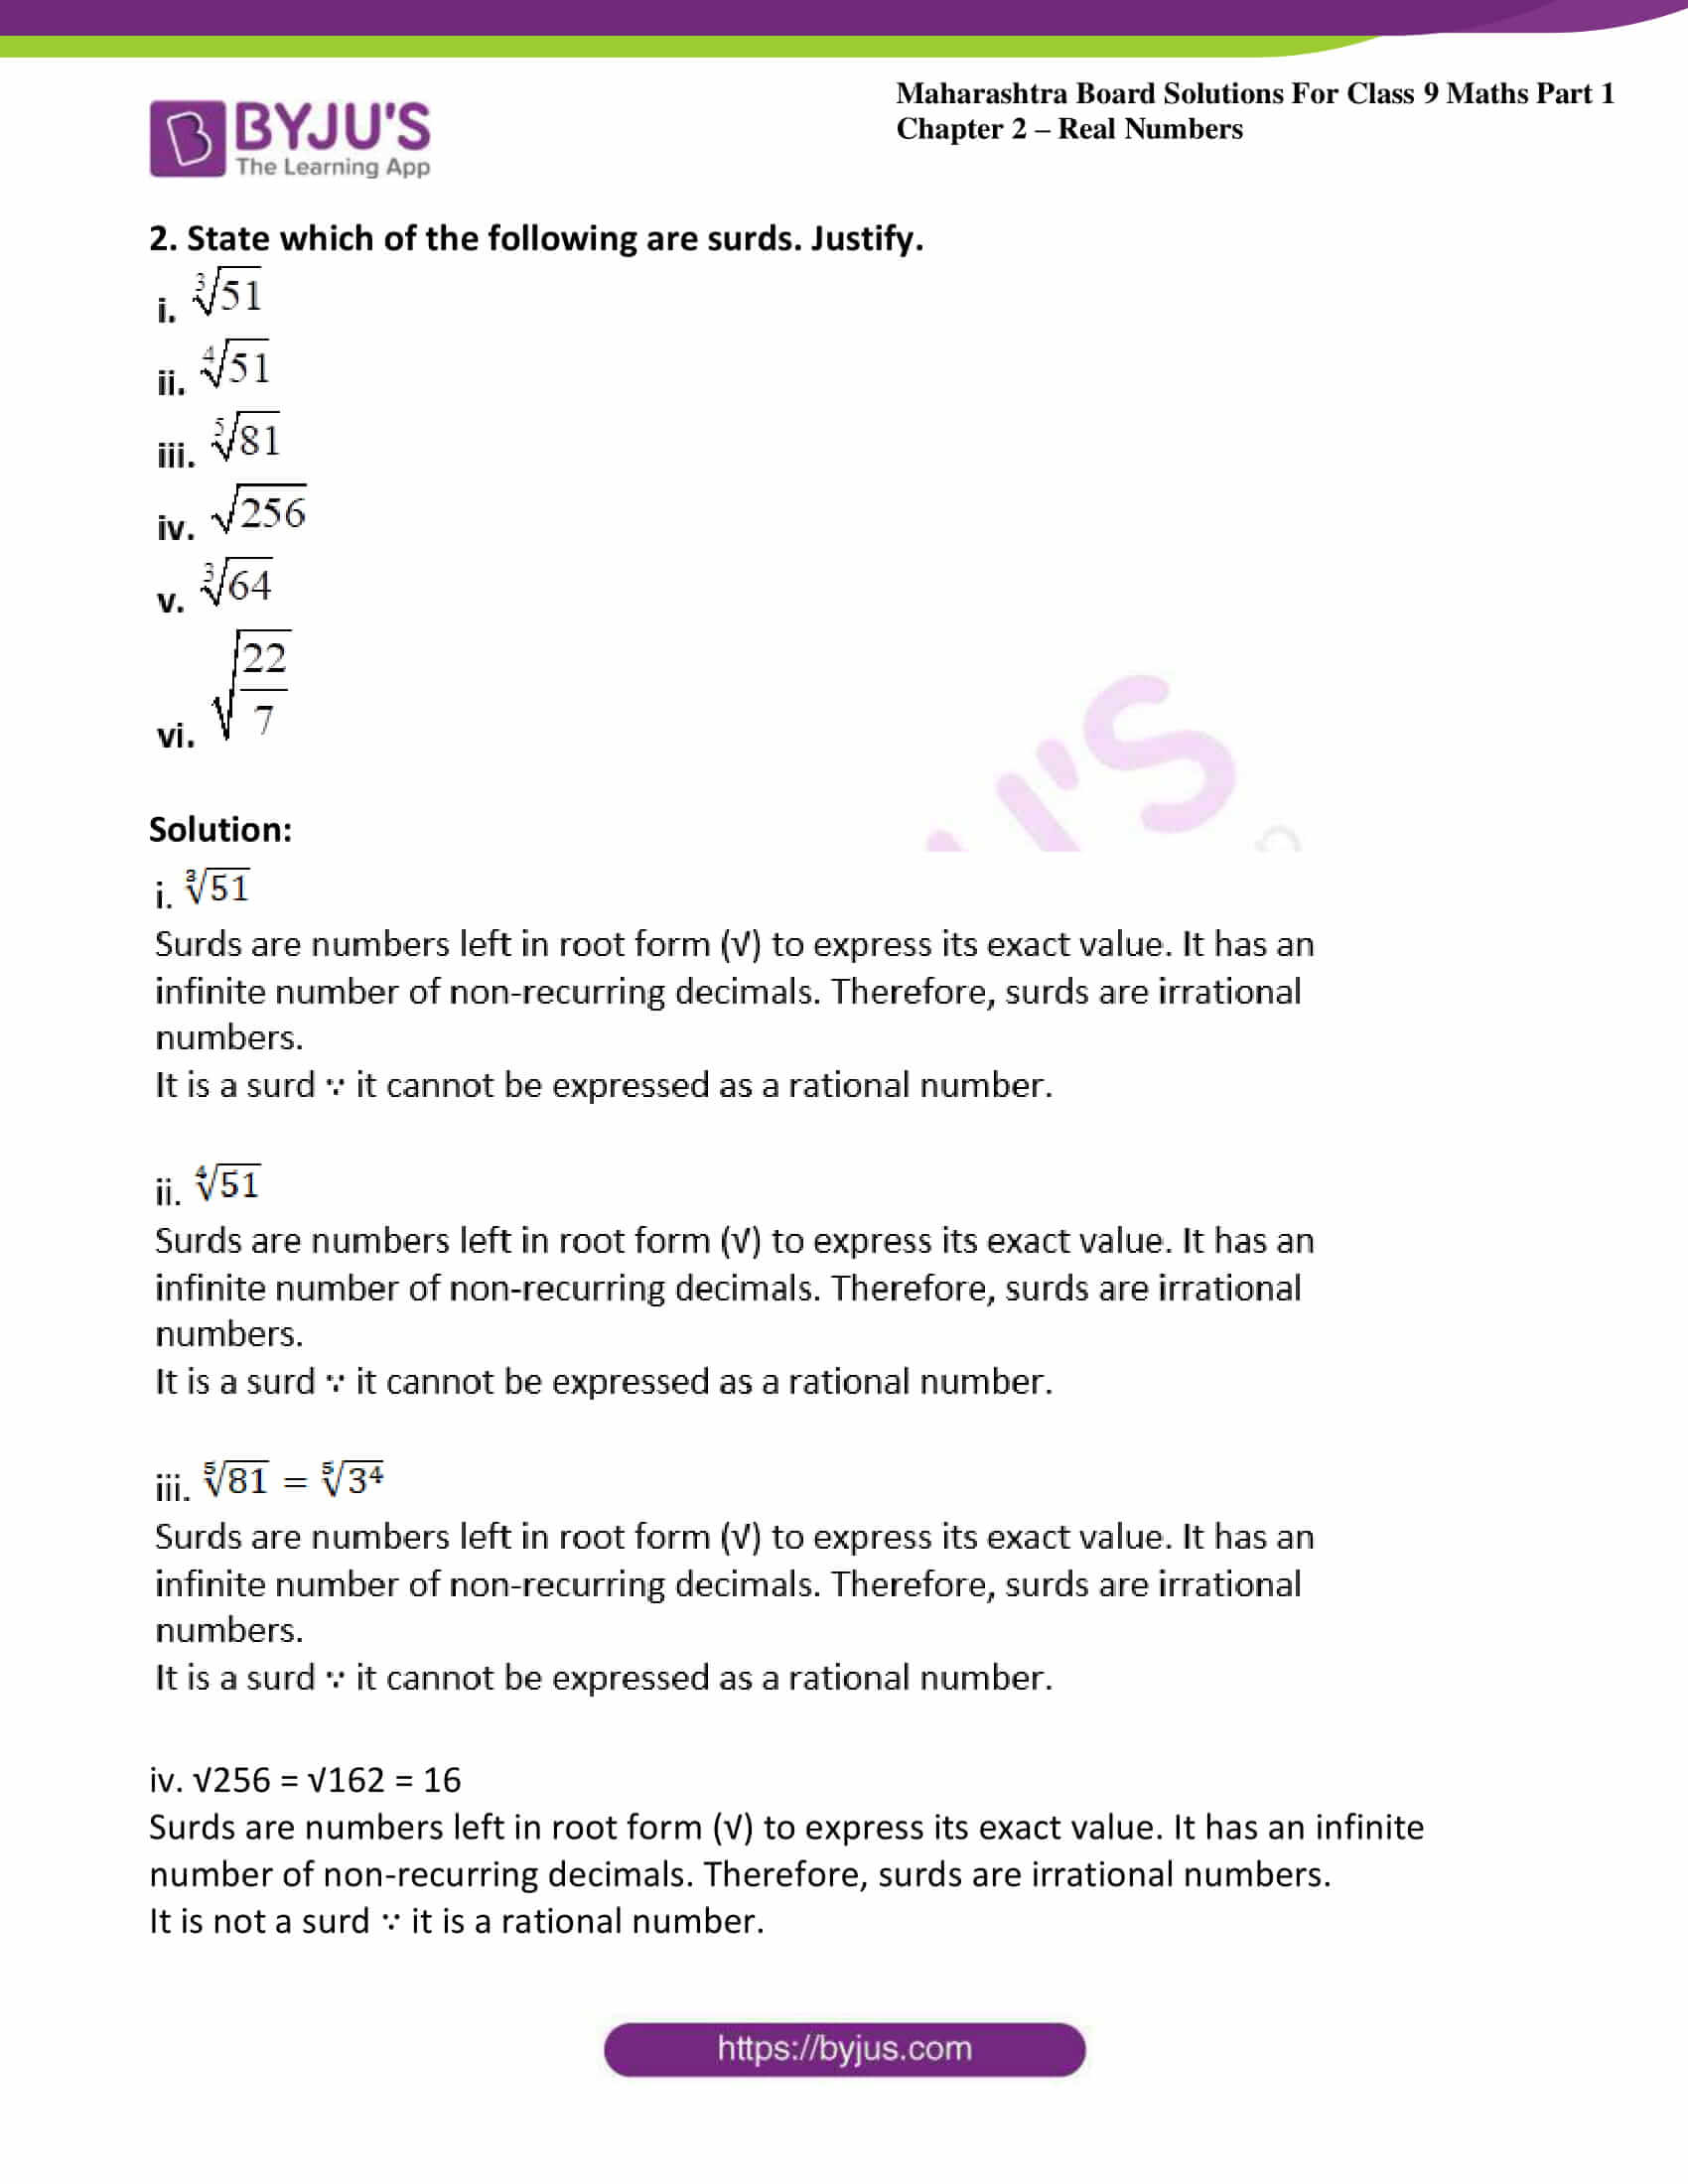 msbshse sol class 9 maths part 1 chapter 2 real numbers 13